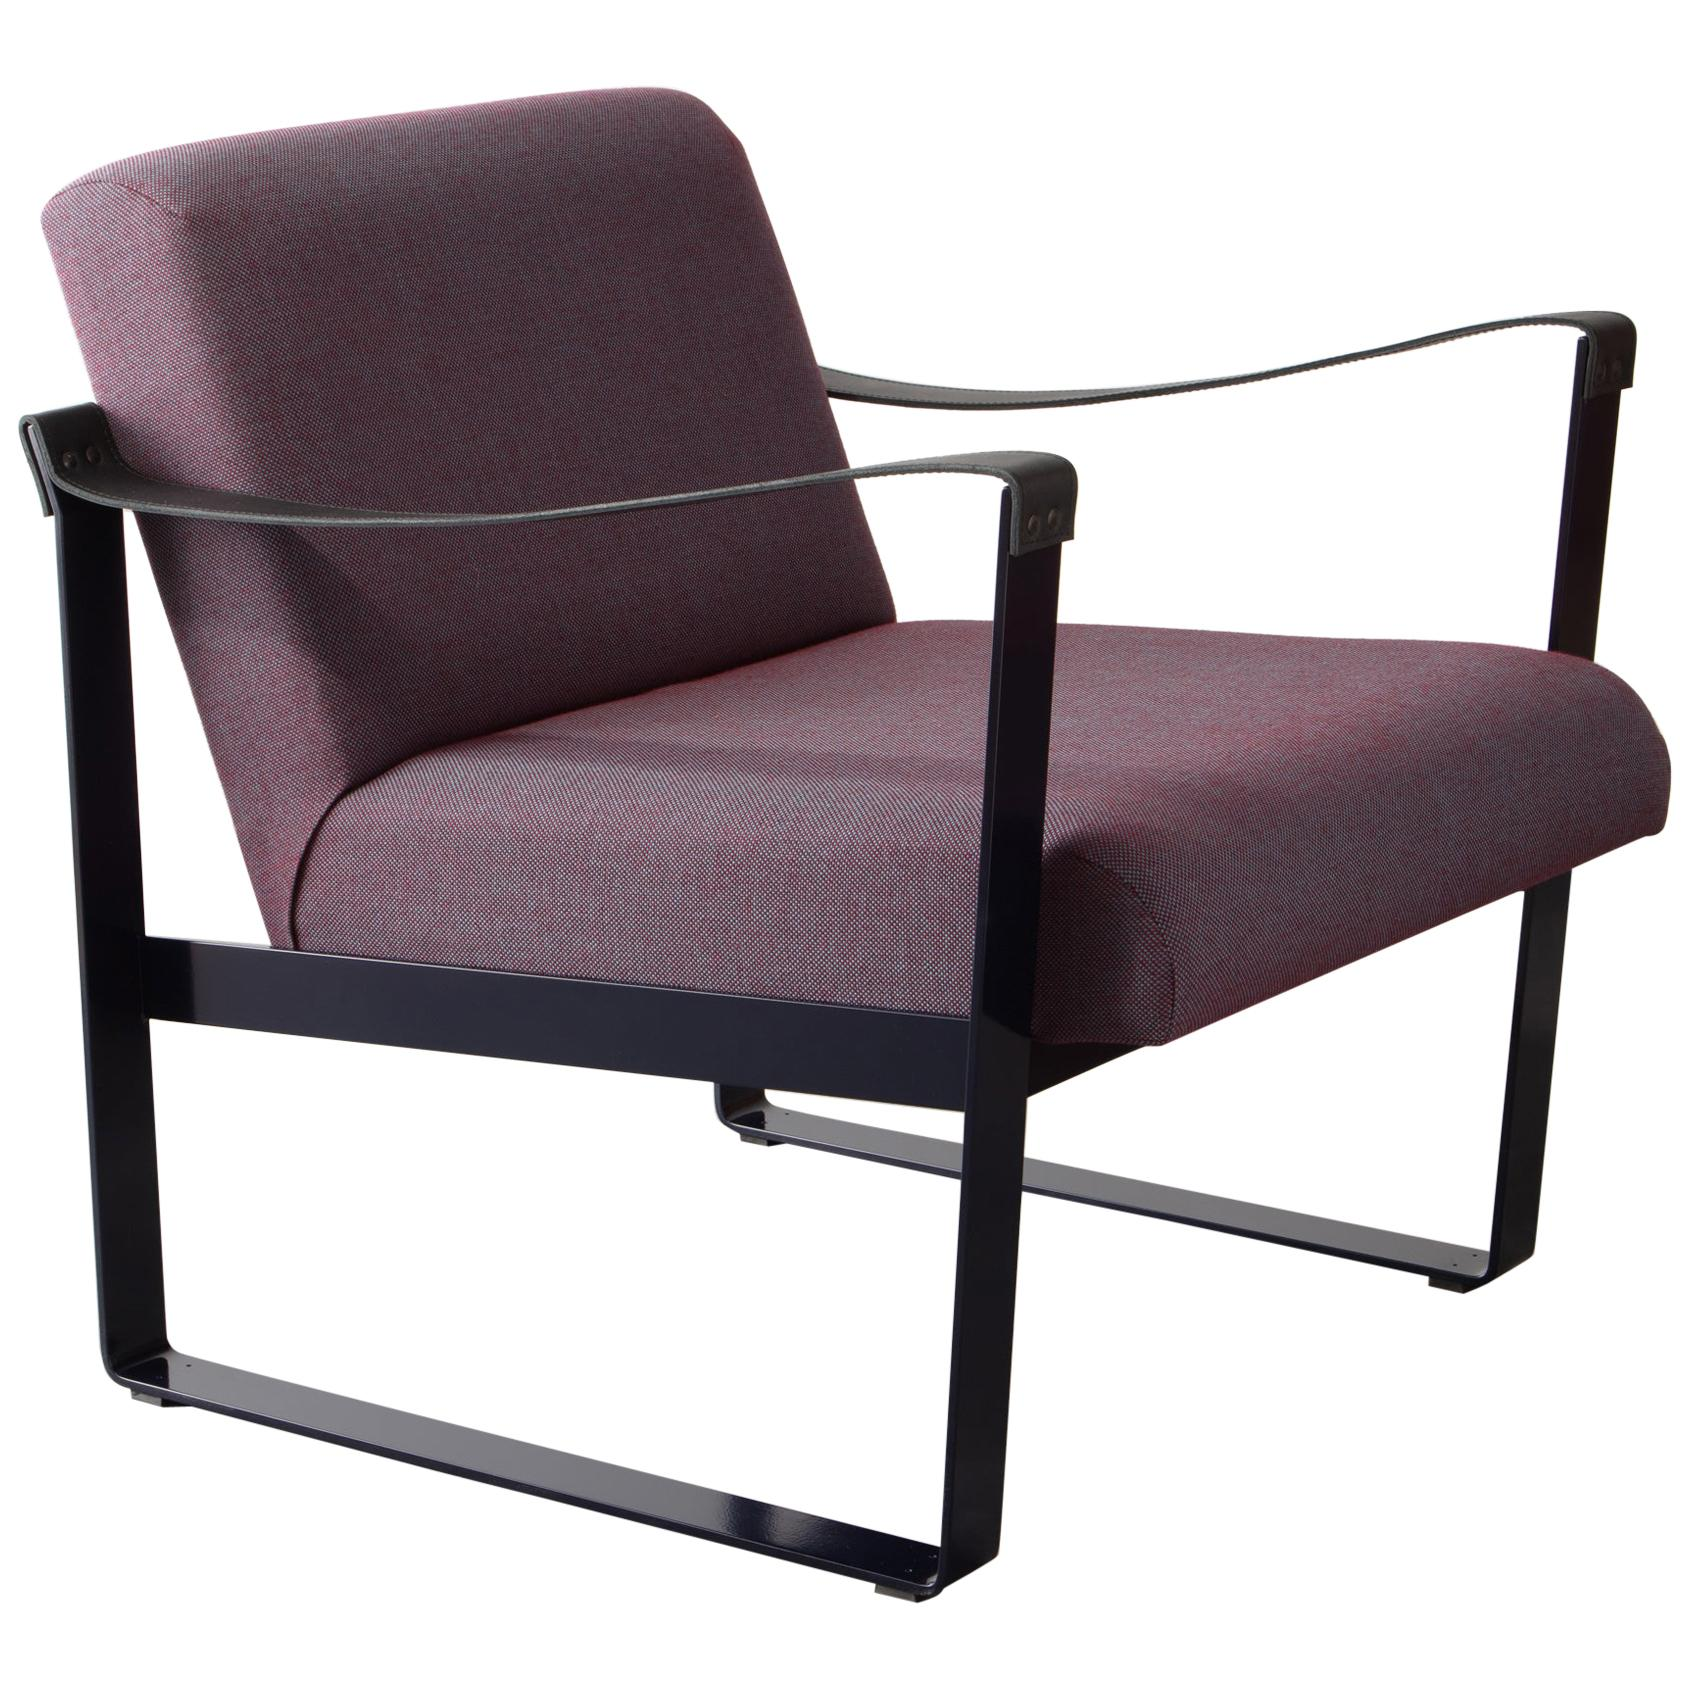 Strap Lounge Chair, upholstery in bouclé, felt, or COM, Made in USA